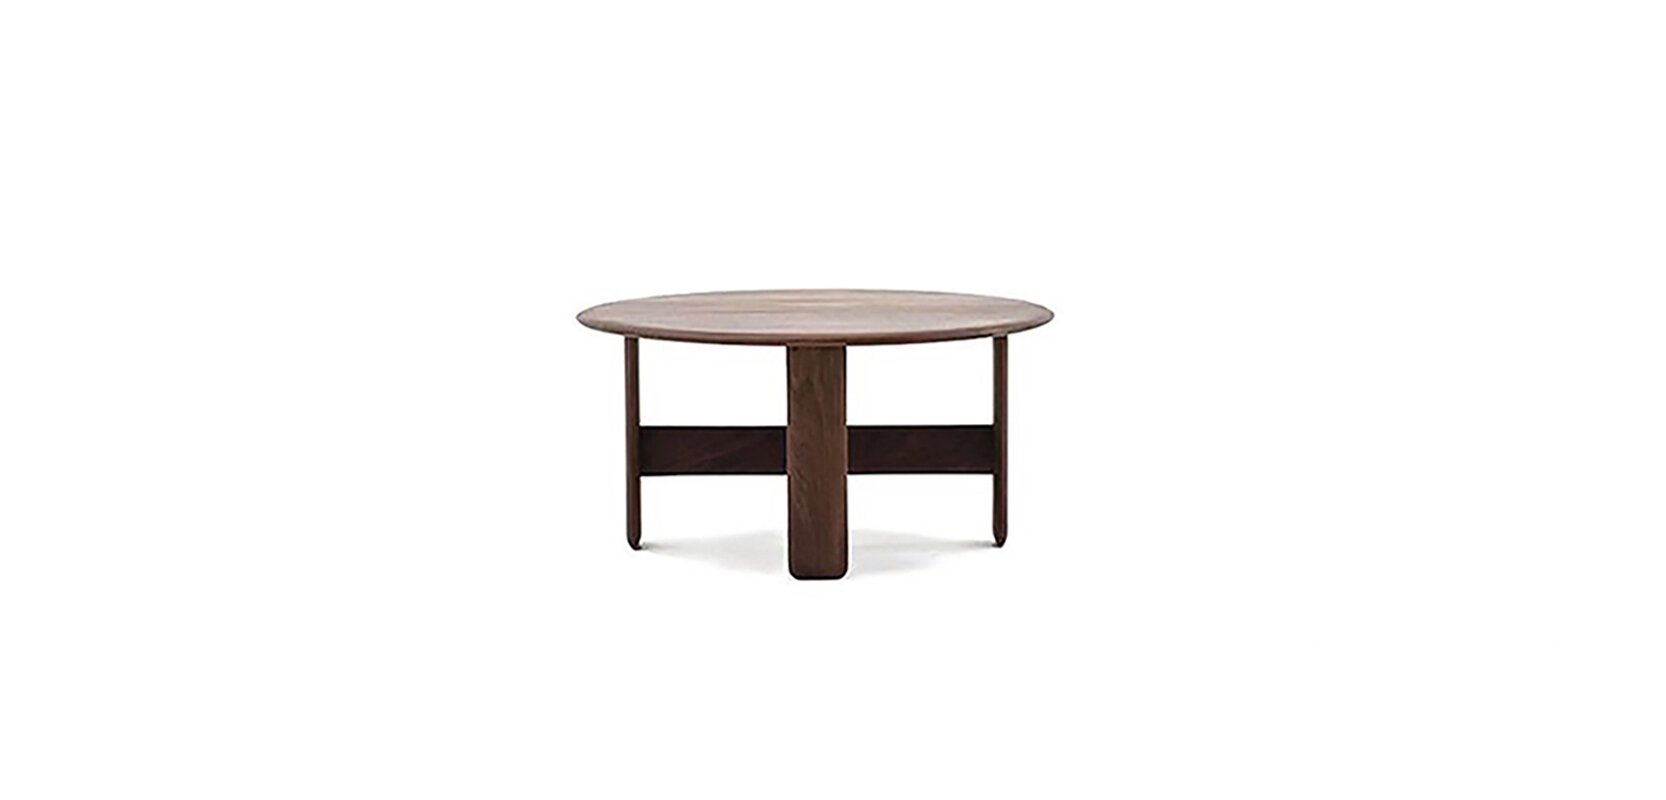 LOOP COFFEE TABLE BRAND:  FNJI  WEB:   www.fnji.com  Loop Coffee Table brings modern oriental style with the poetic touch of walnut wood and the feeling of nature. The geometry sense make it have stronger visual sense.